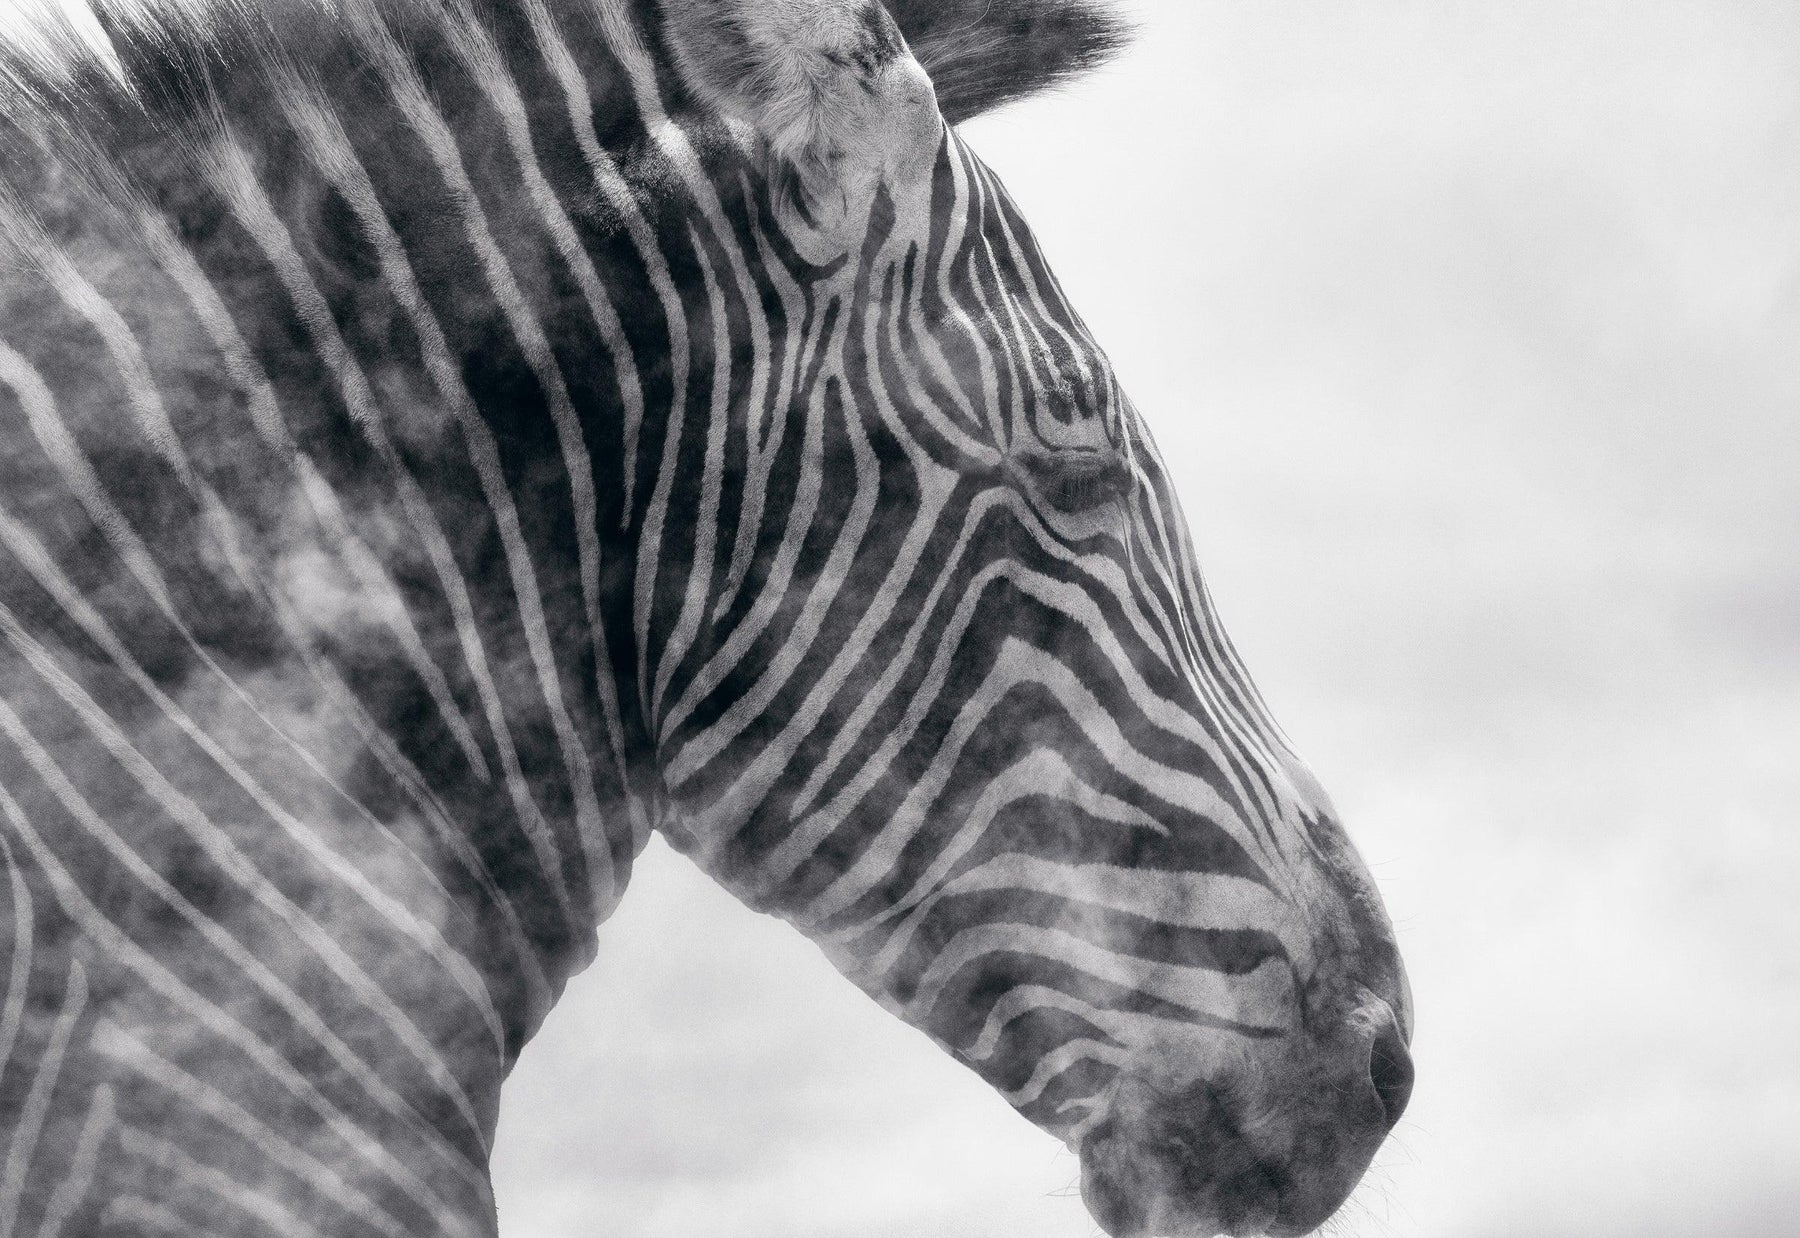 Black and white close up of a zebra head surrounded by a dust cloud